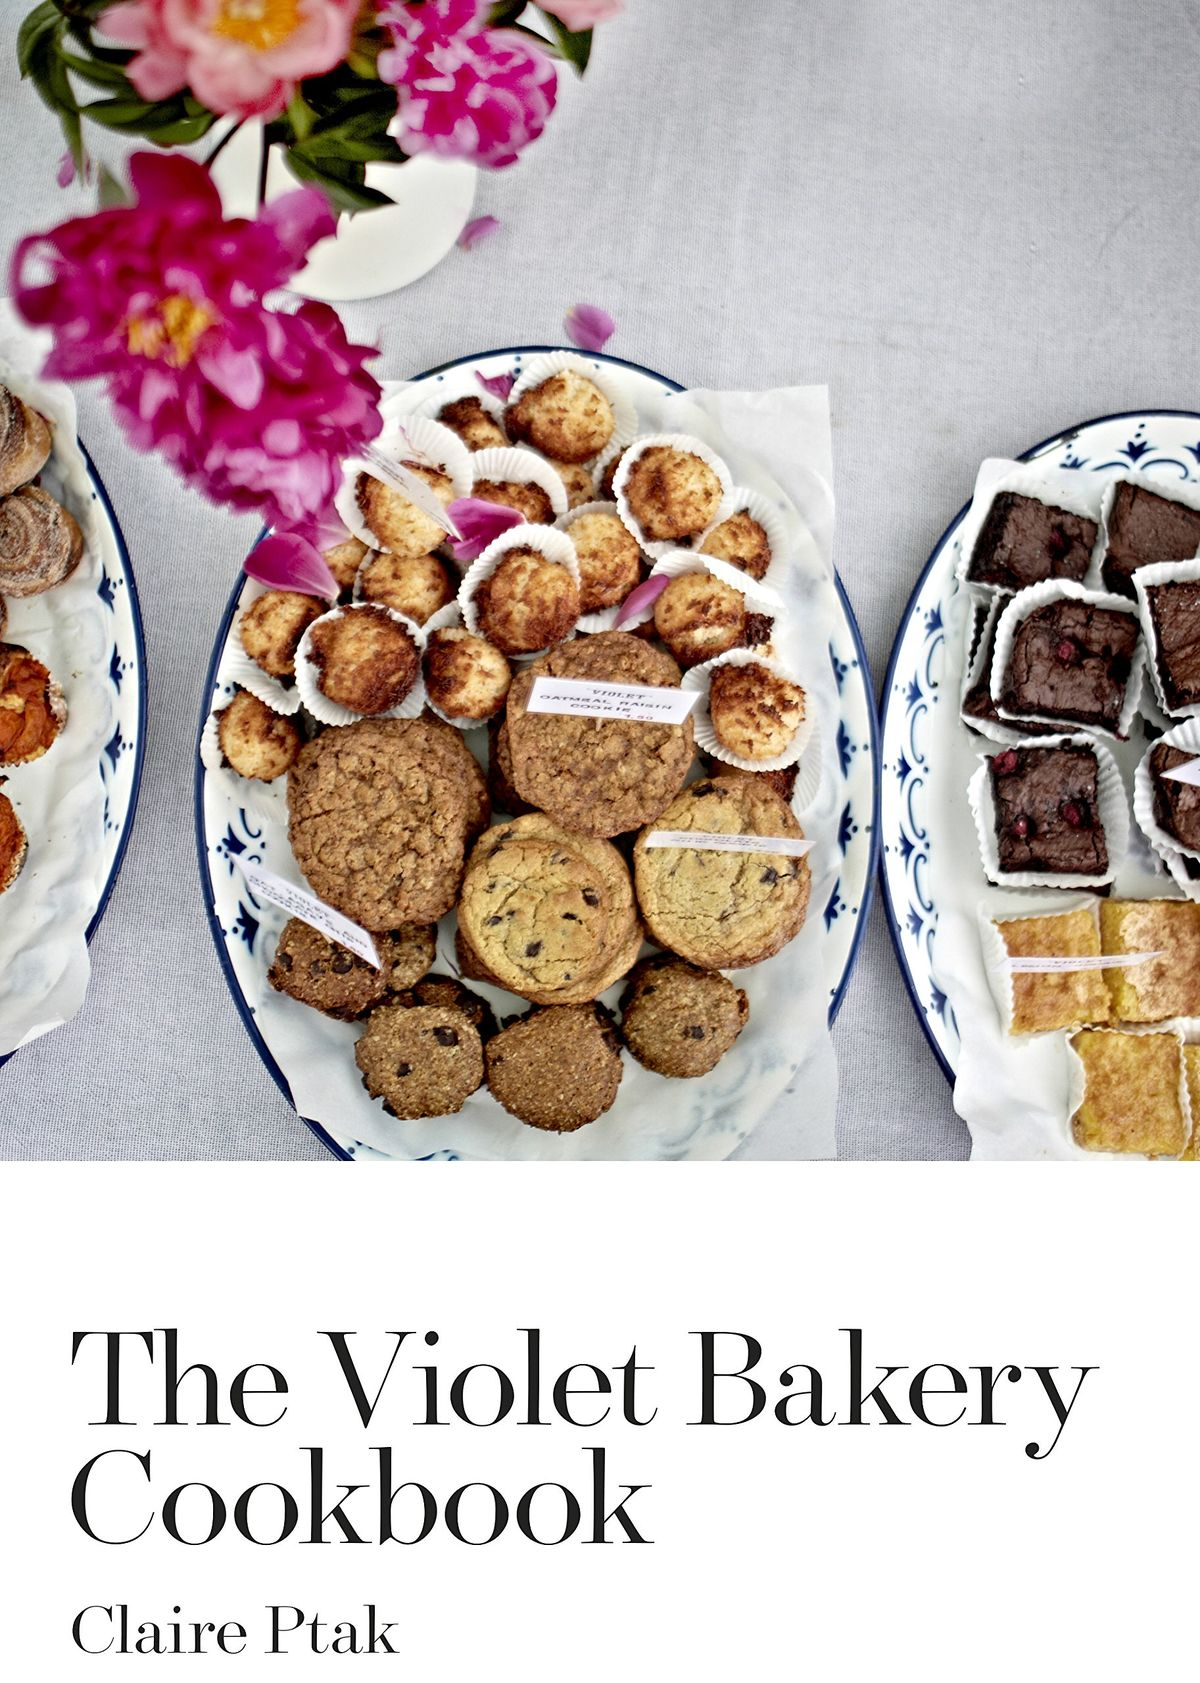 The Violet Bakery Cookbook By Claire Ptak The Royal